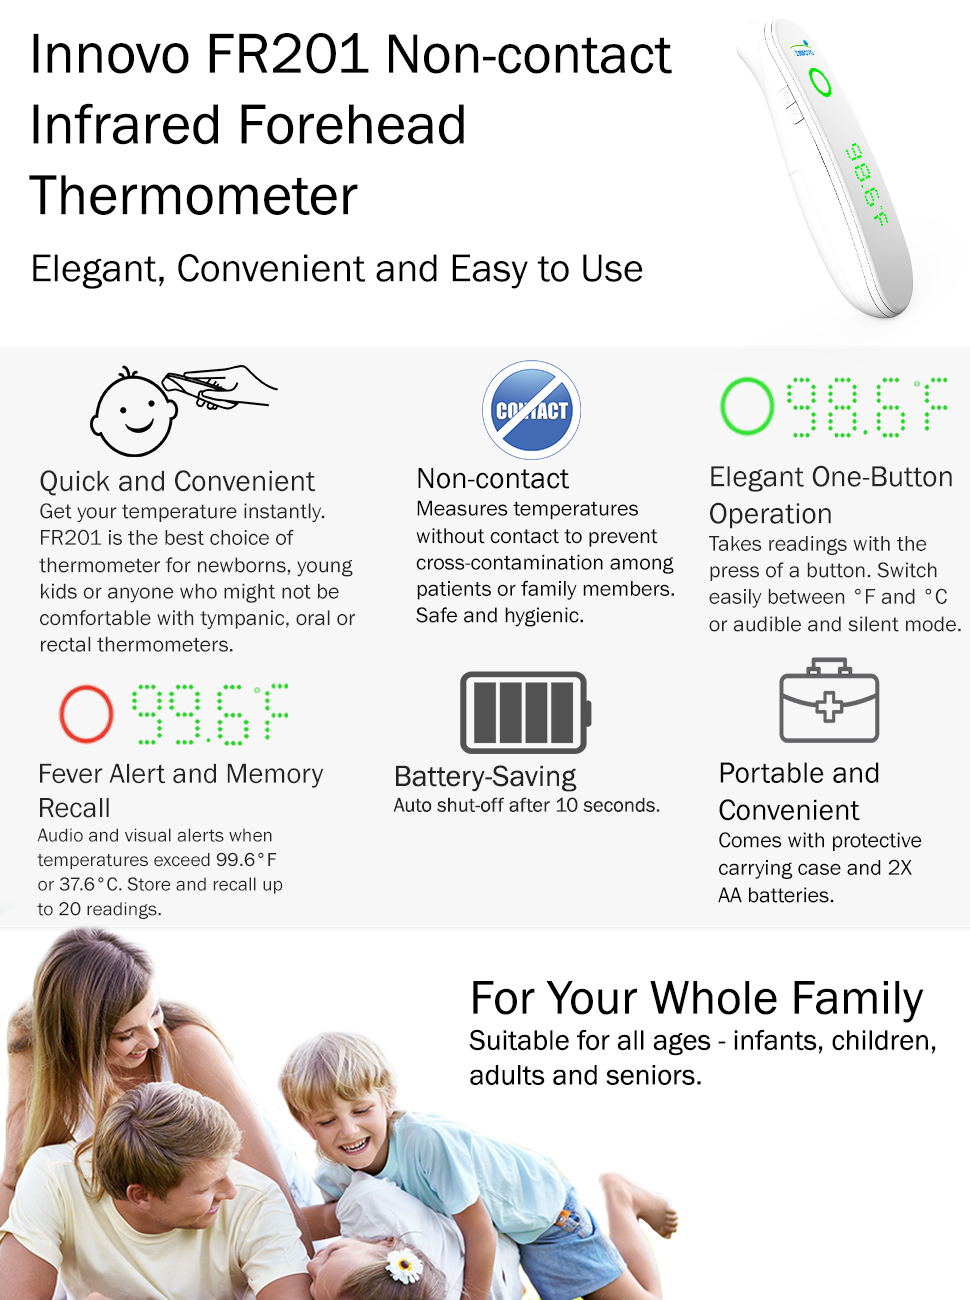 2018 Newly Upgraded Innovo Fr201 Non Contact Medical Forehead Thermometer Safety Manual About The Model Inv